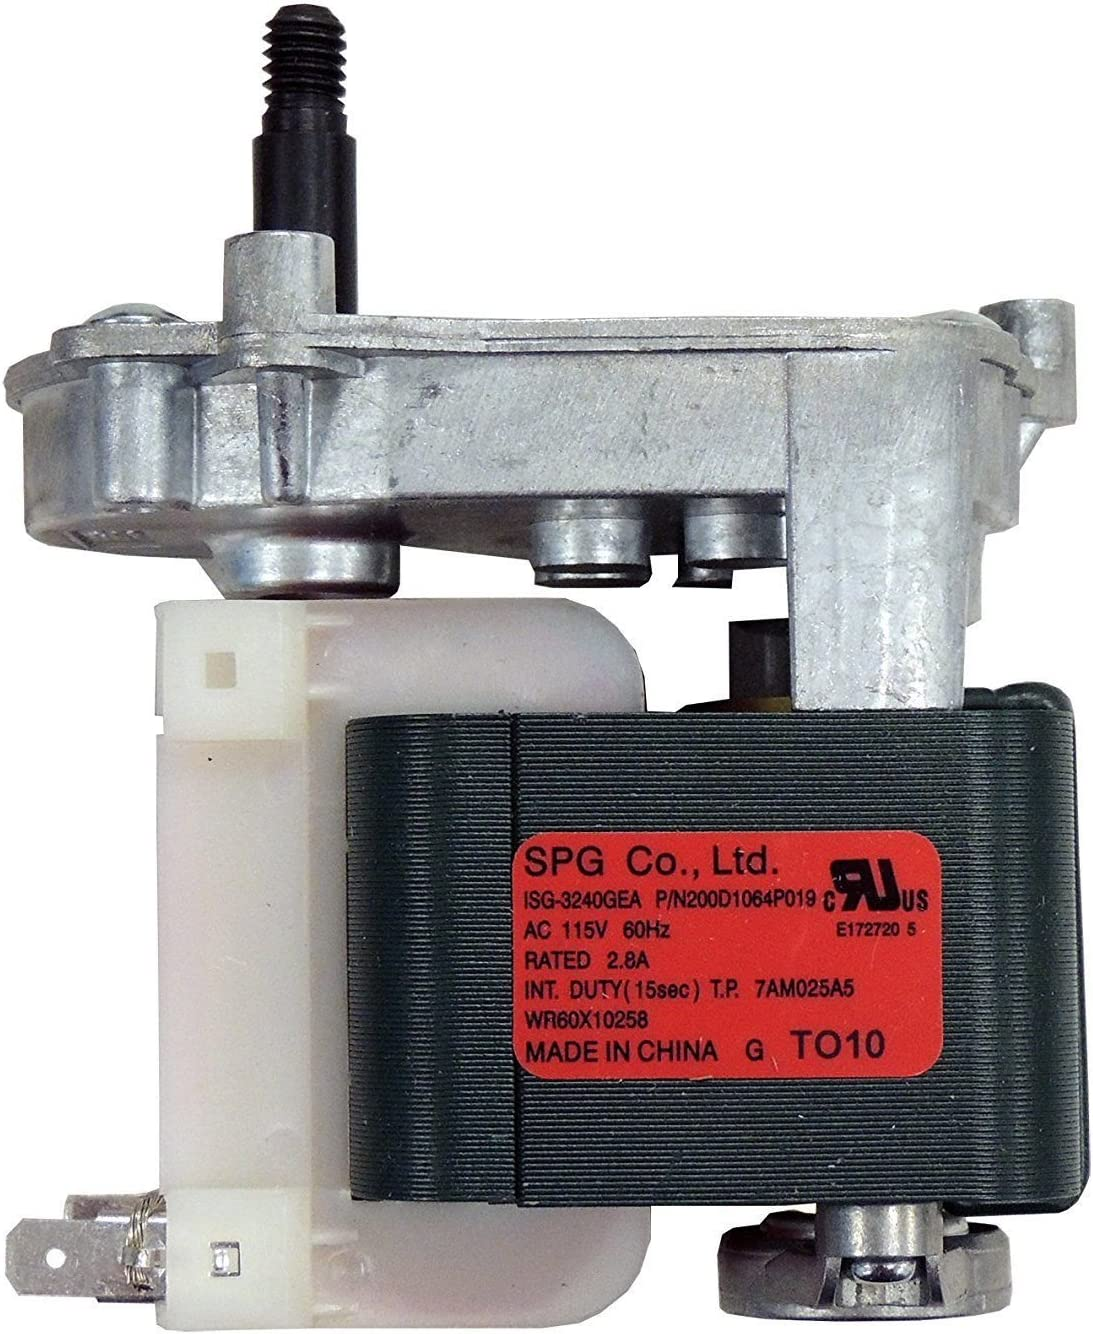 (RB) WR60X10258 Ice cruscher Auger Motor for Refrigerator GE, Hotpoint